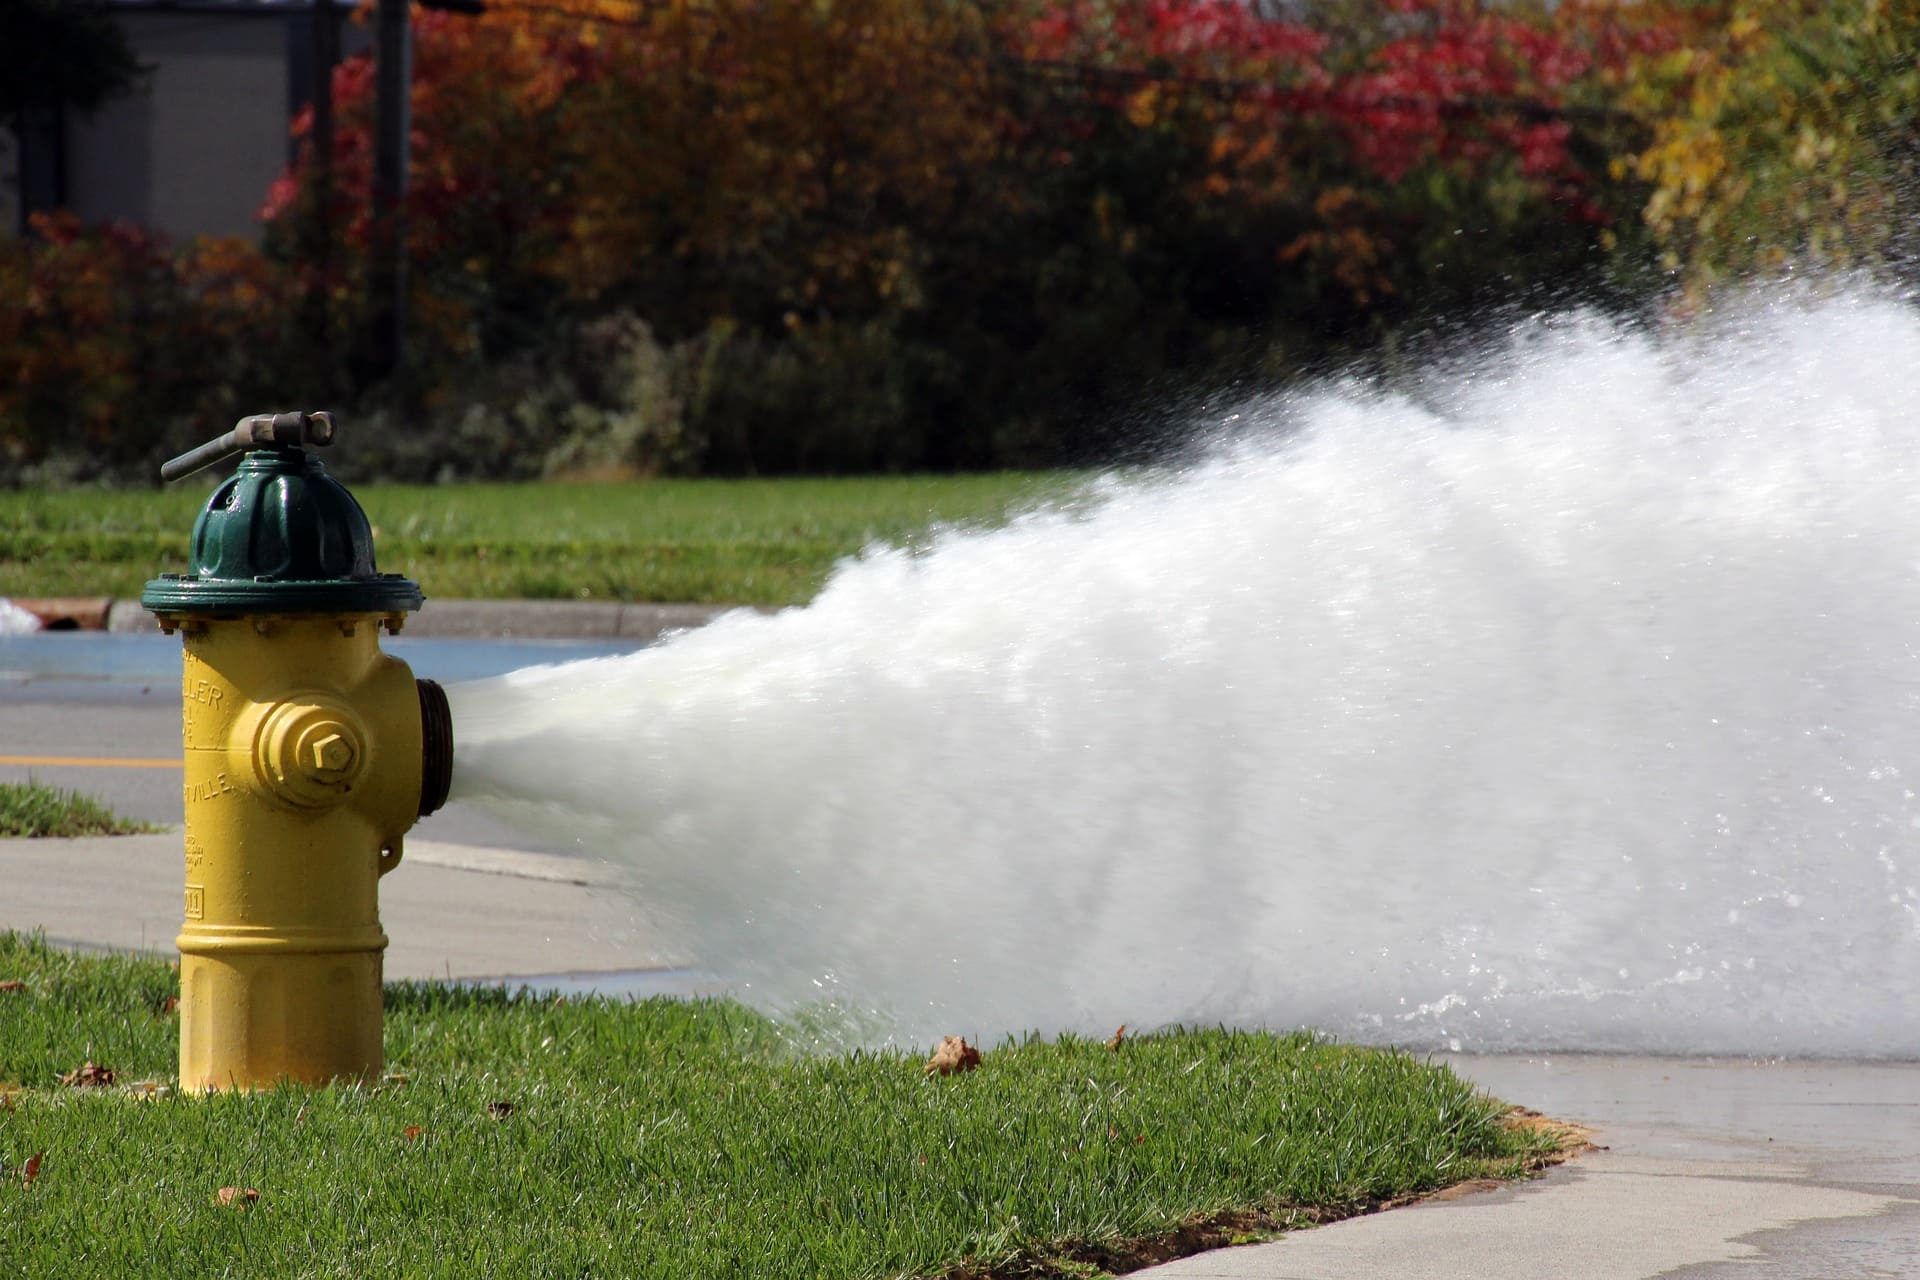 open fire hydrant is releasing water